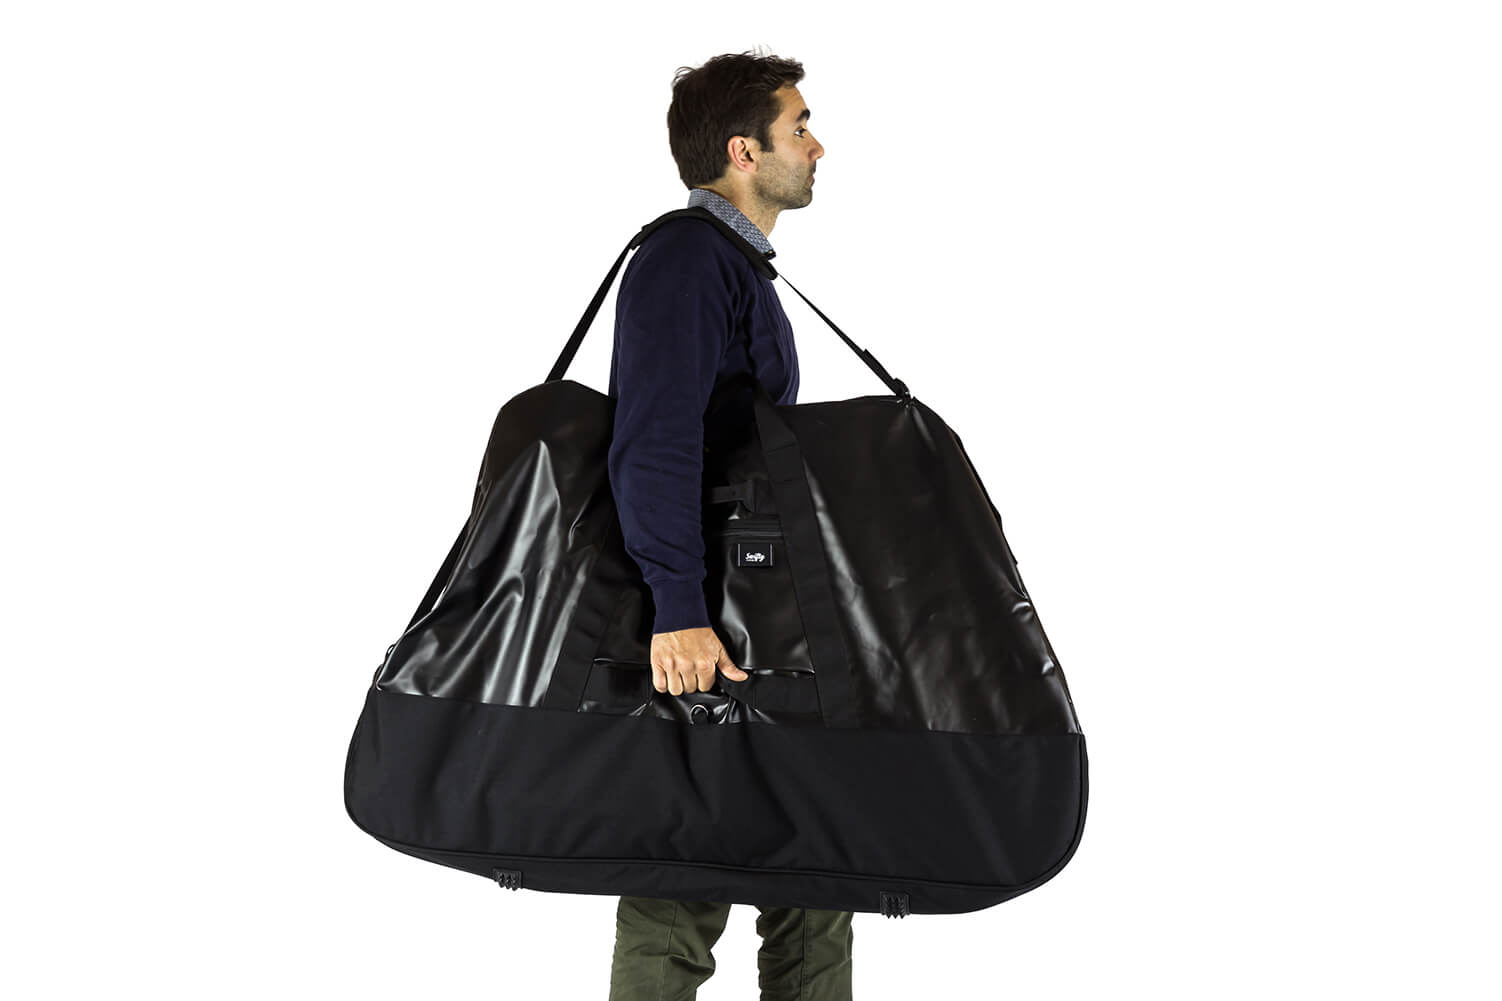 adult scooter bag, adult scooter protective bag